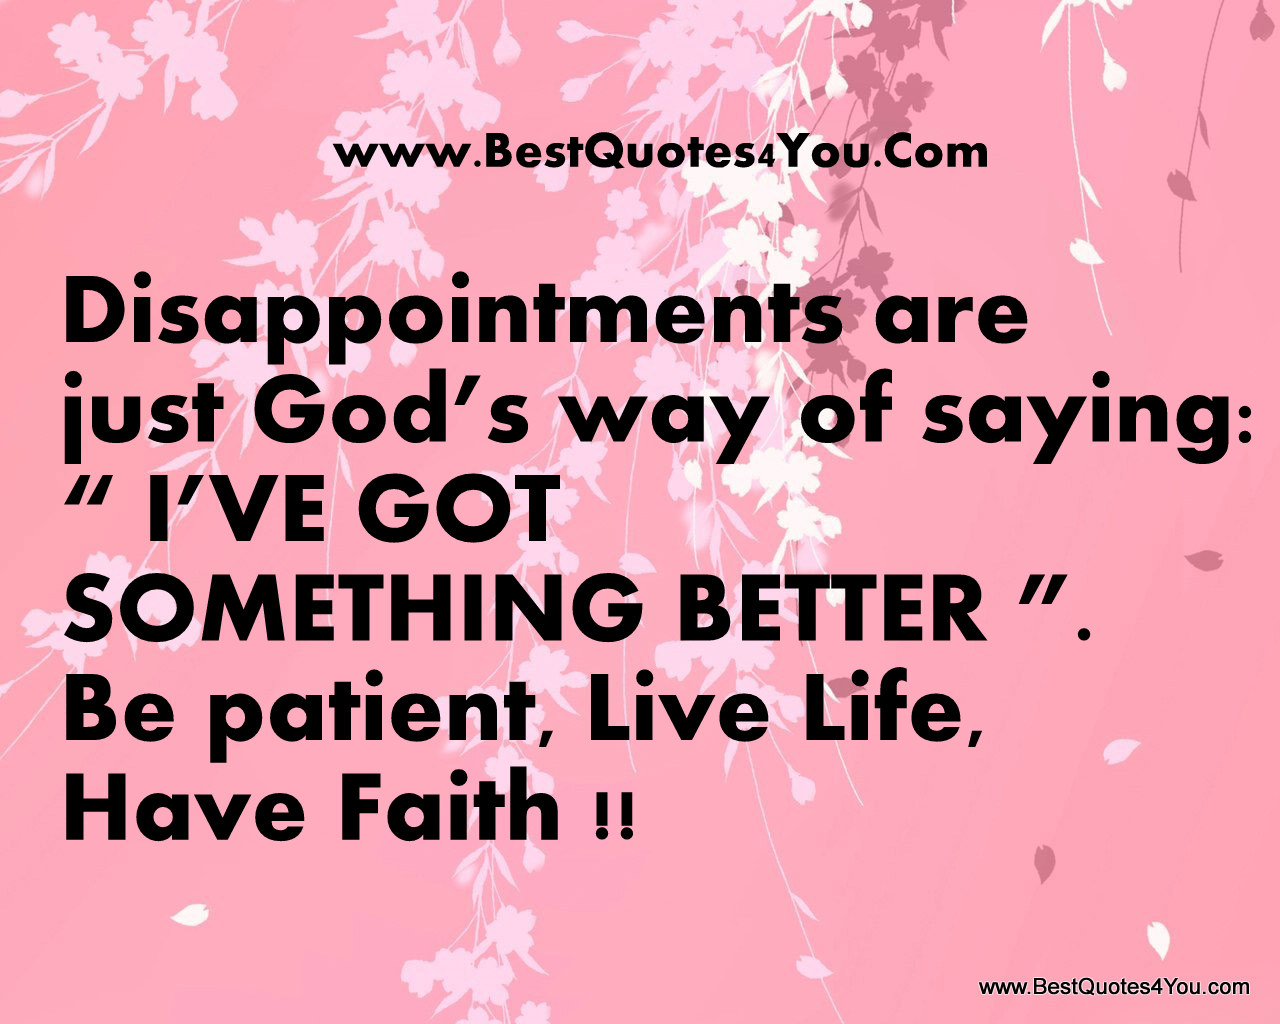 Good Quote about Disappointments in Life - quoPic